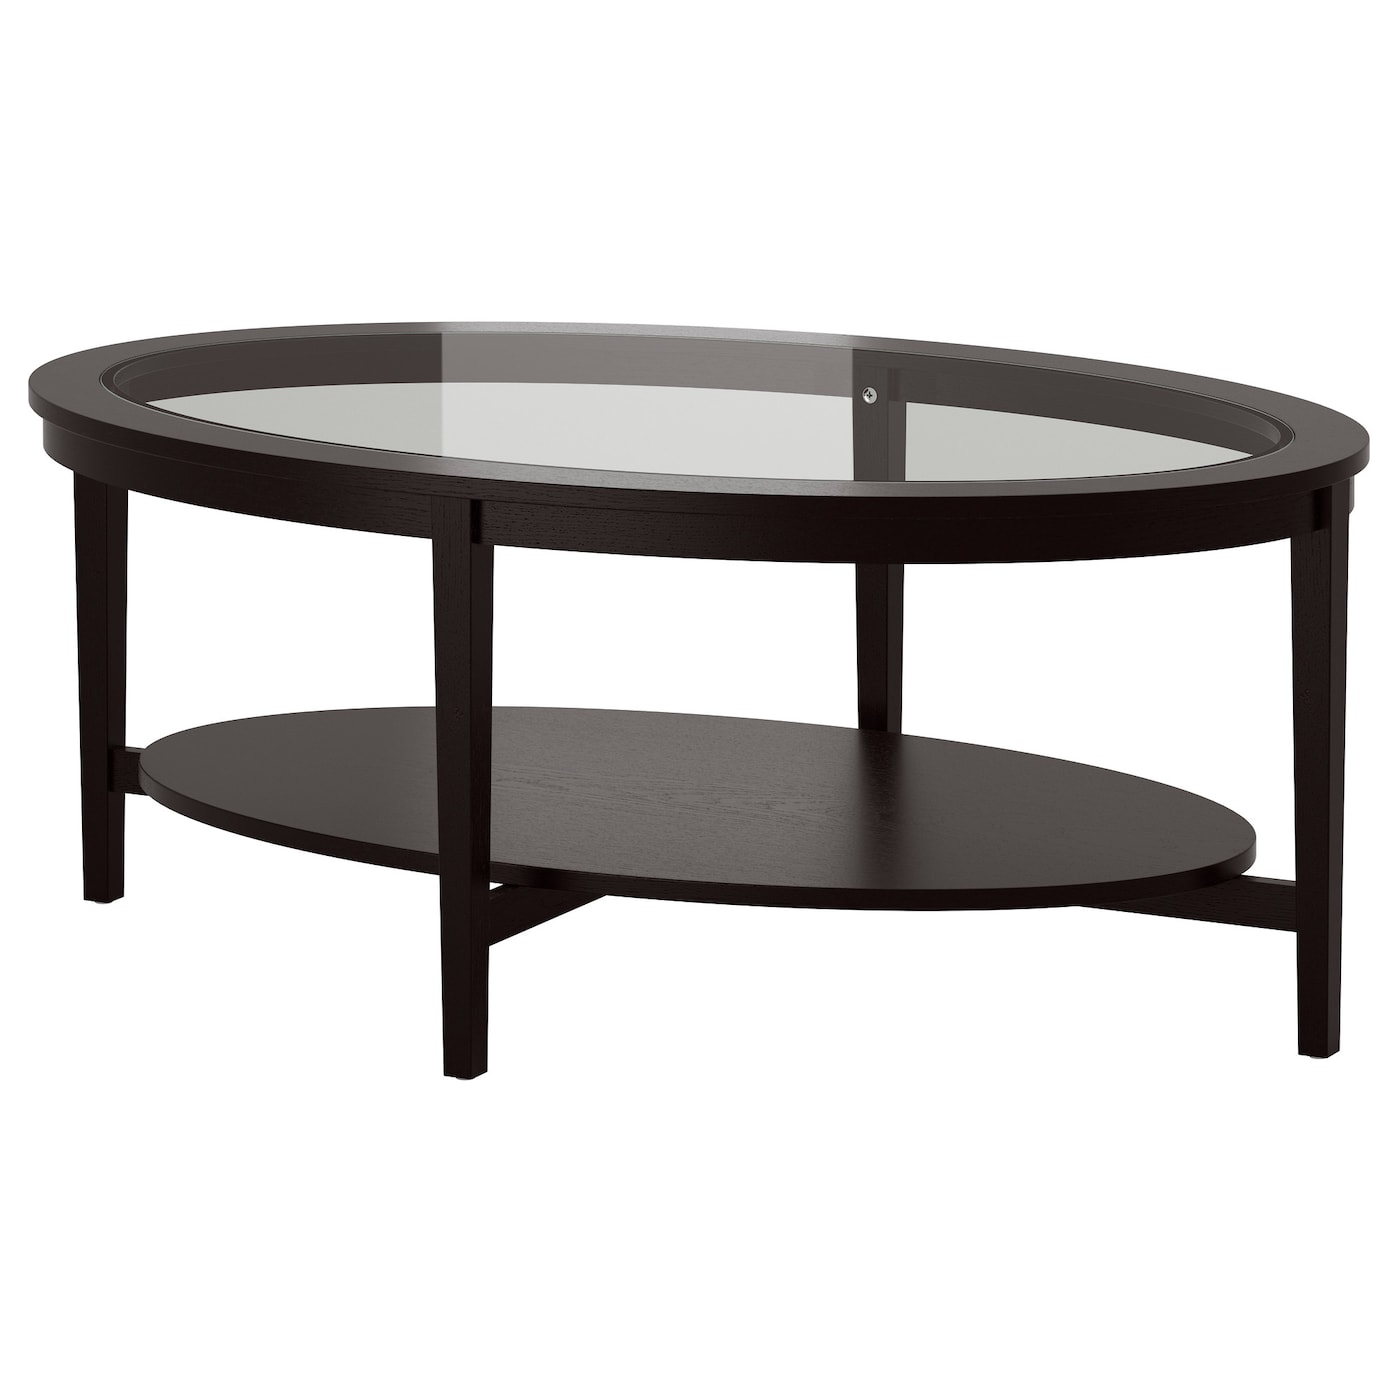 Malmsta coffee table black brown 130x80 cm ikea for Table gigogne ikea